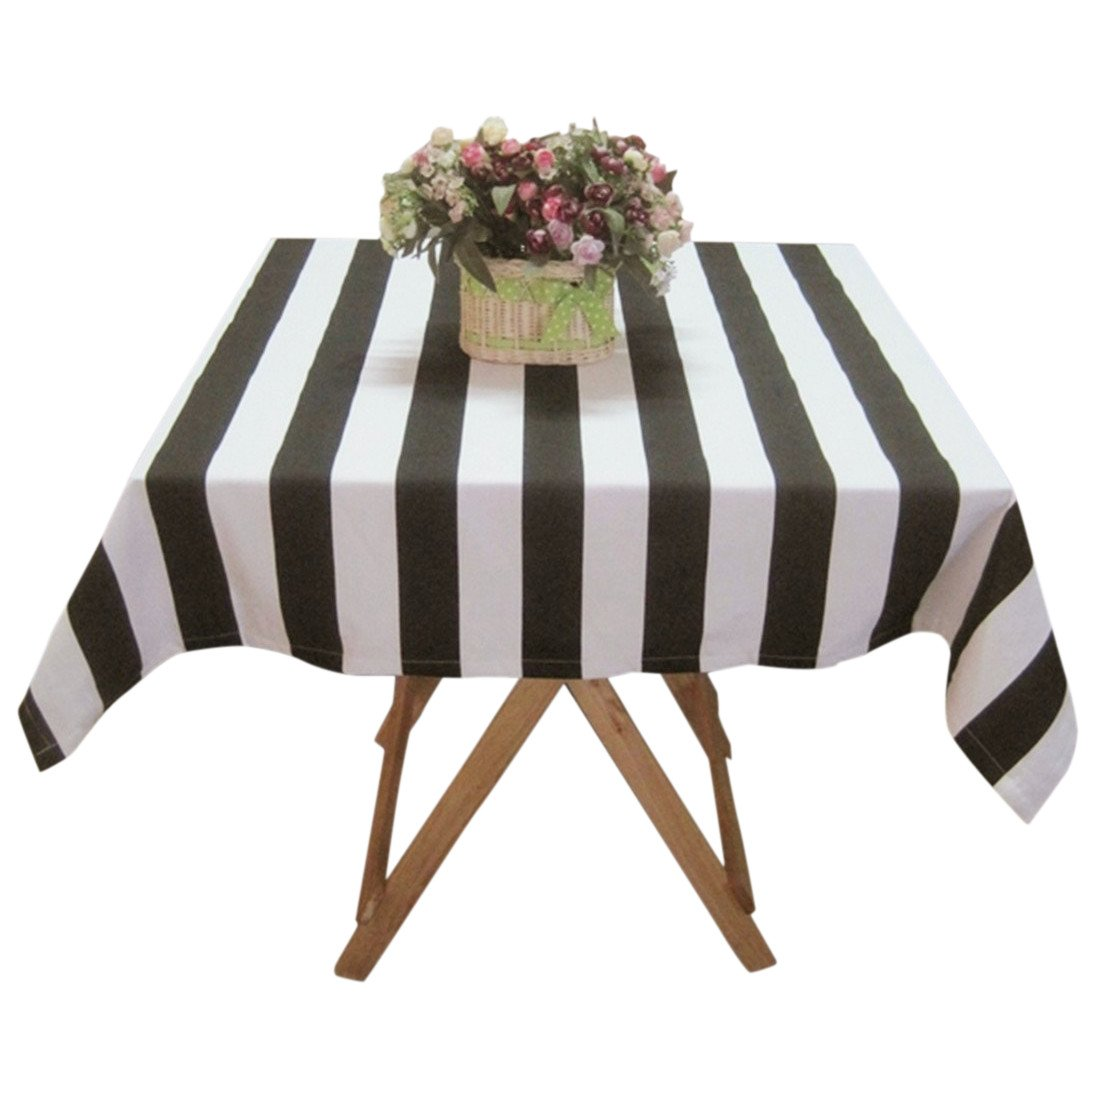 ustide black and white striped tablecloth cotton canvas artistic accents table cover square home kitchen luxury dining room furniture west elm free shipping code target vanity